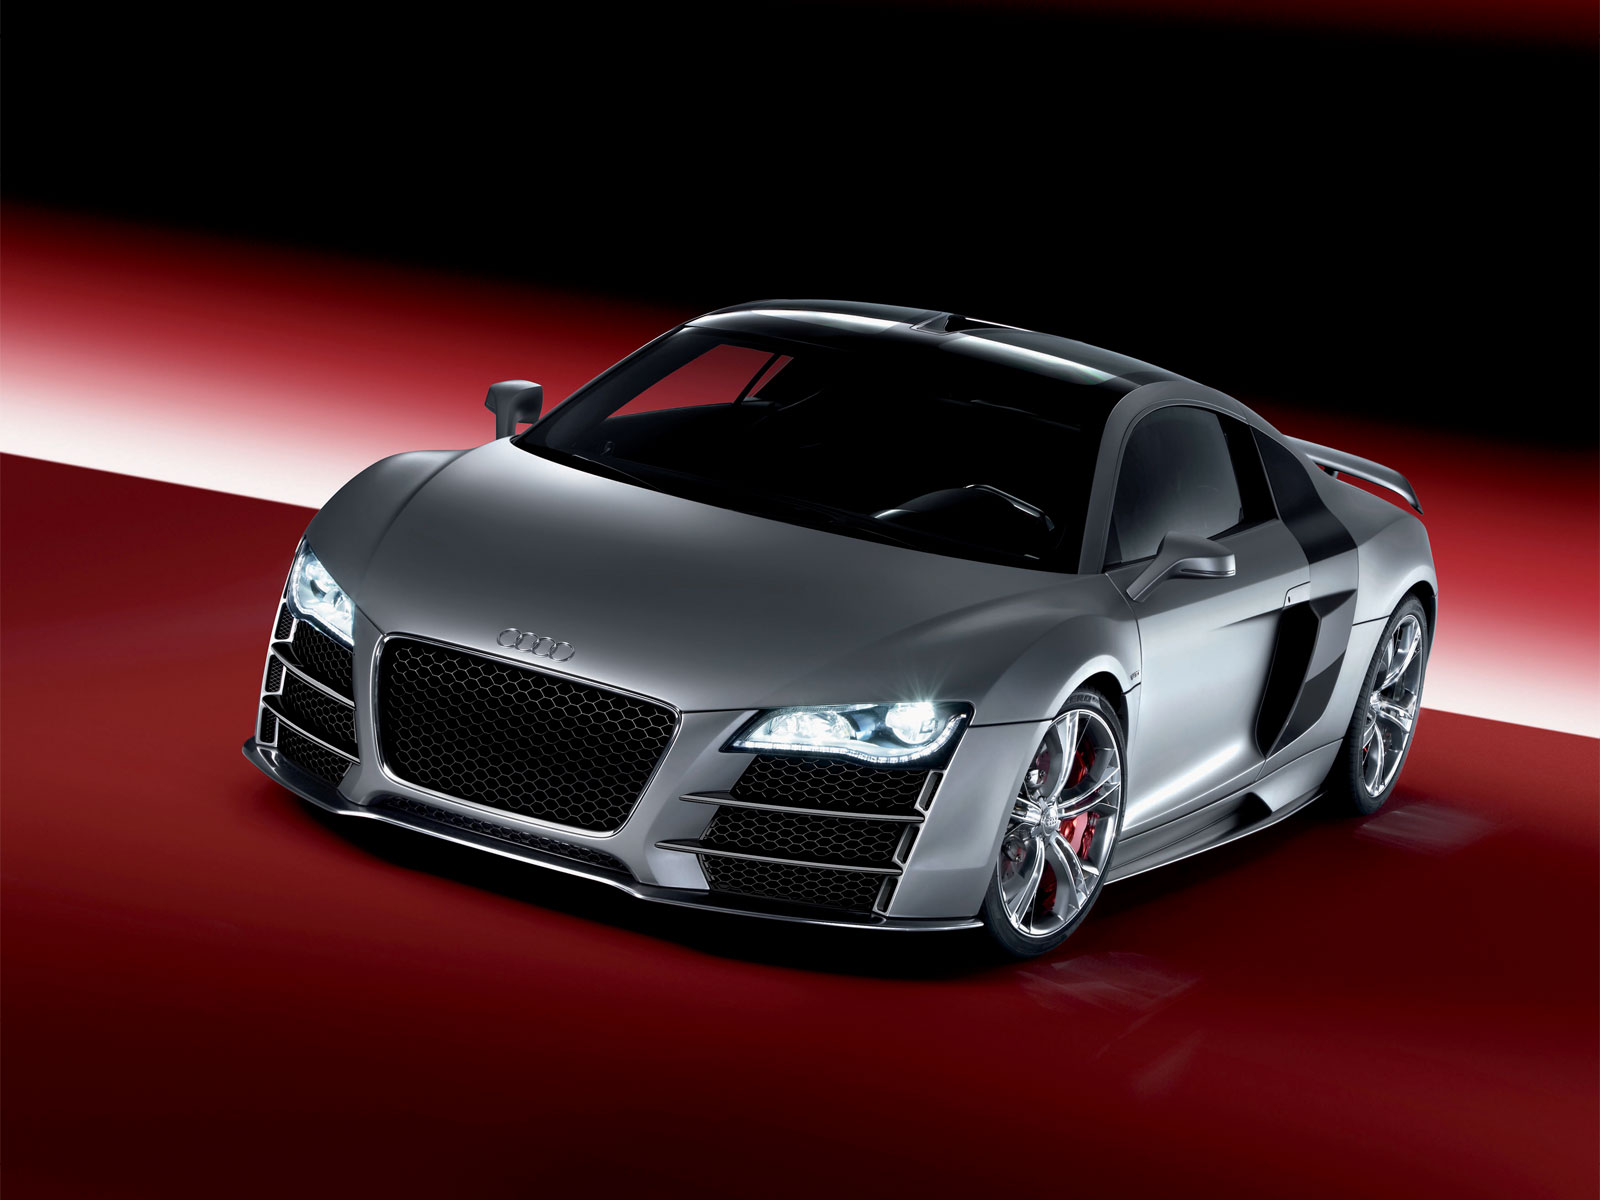 hd car wallpapers audi r8 v12 wallpaper. Black Bedroom Furniture Sets. Home Design Ideas